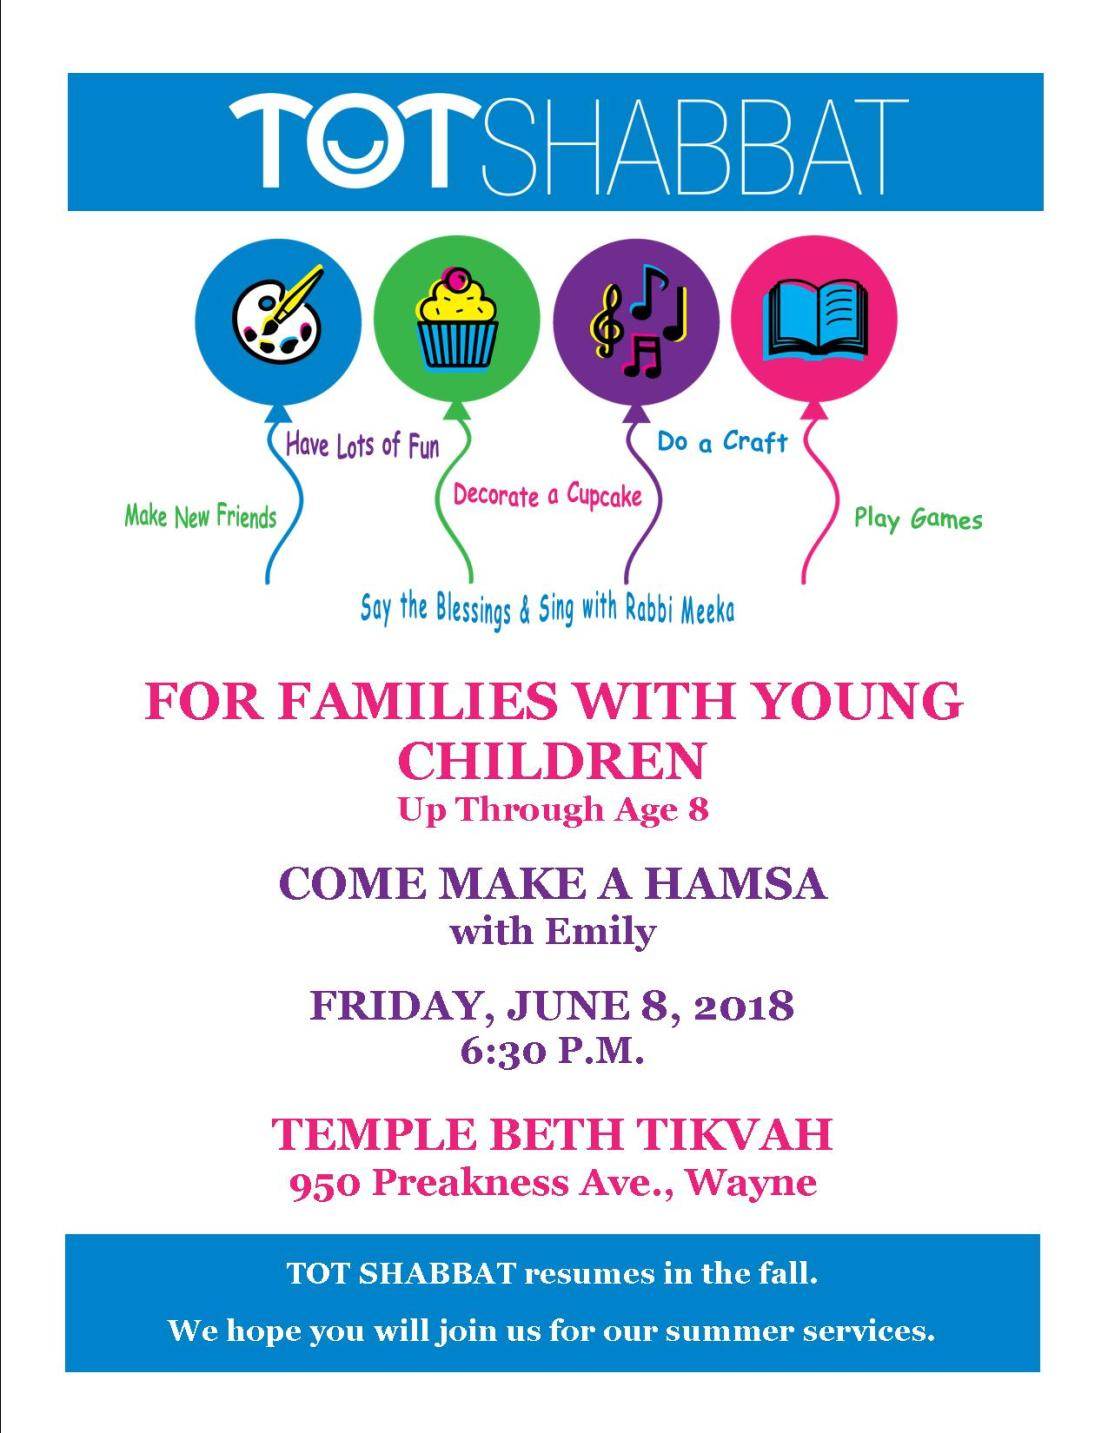 TotShabbat flyernew for summer 2018